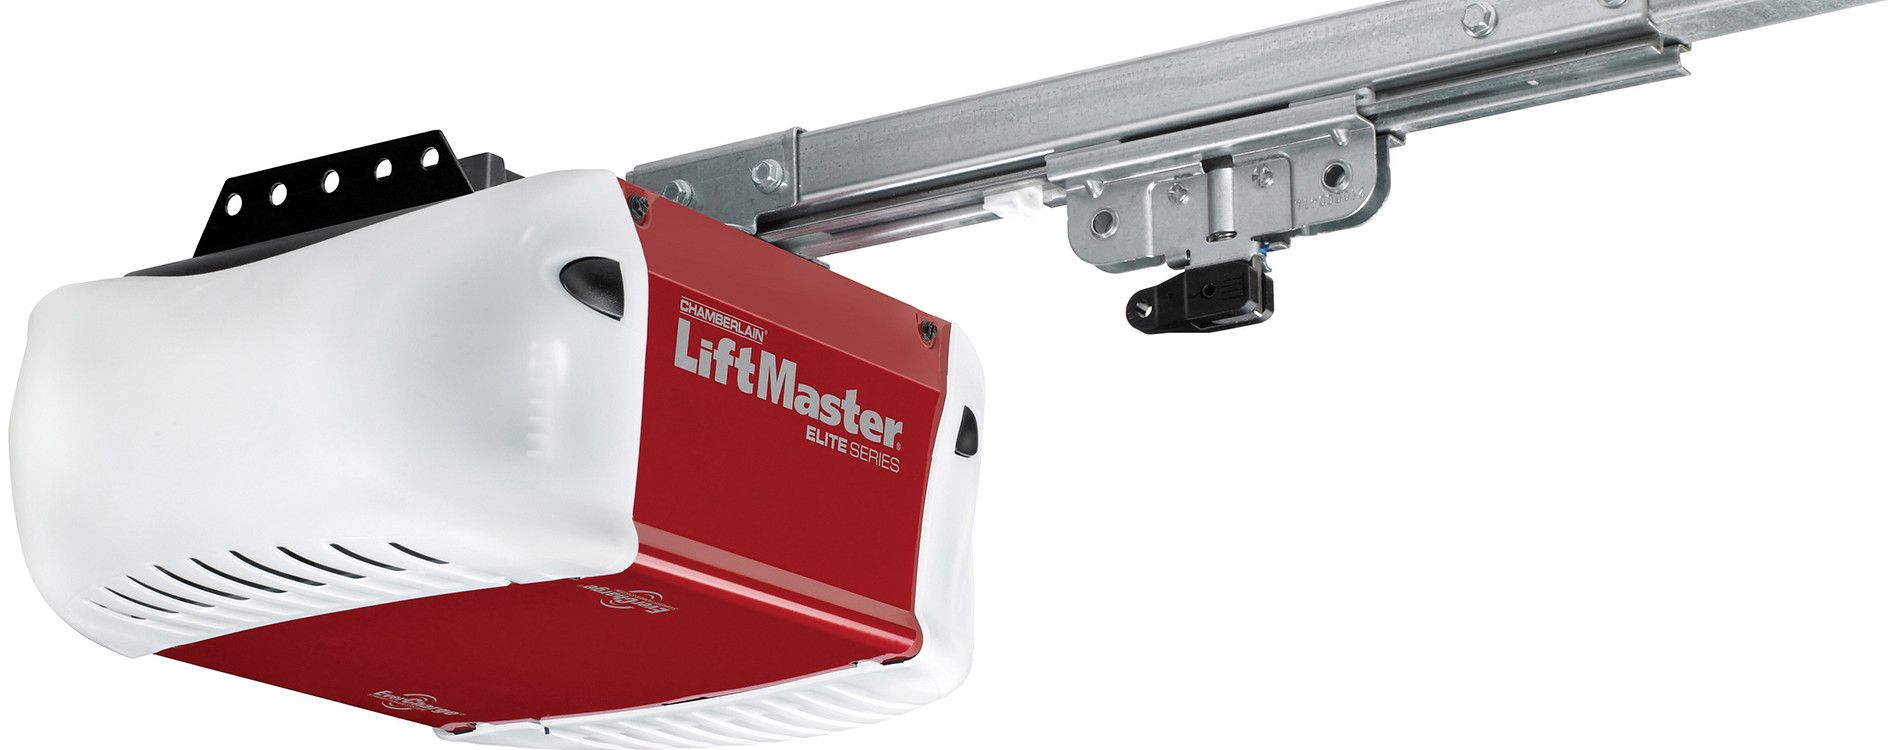 Liftmaster Garage Door Openers Garage Sanctum